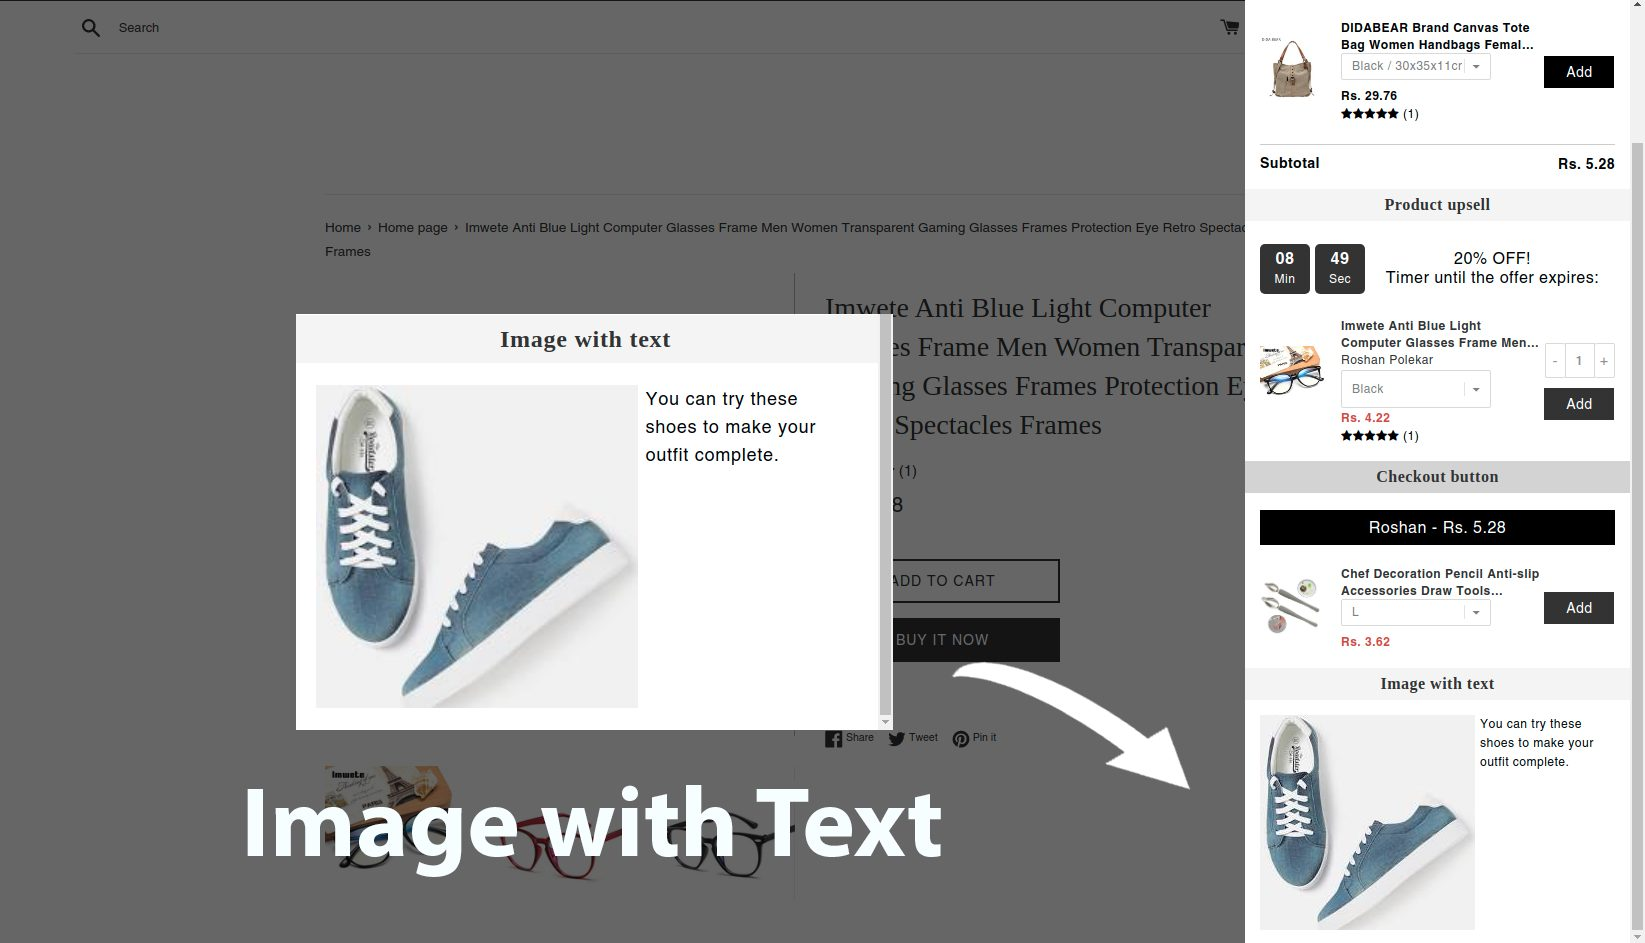 image-with-text-widget